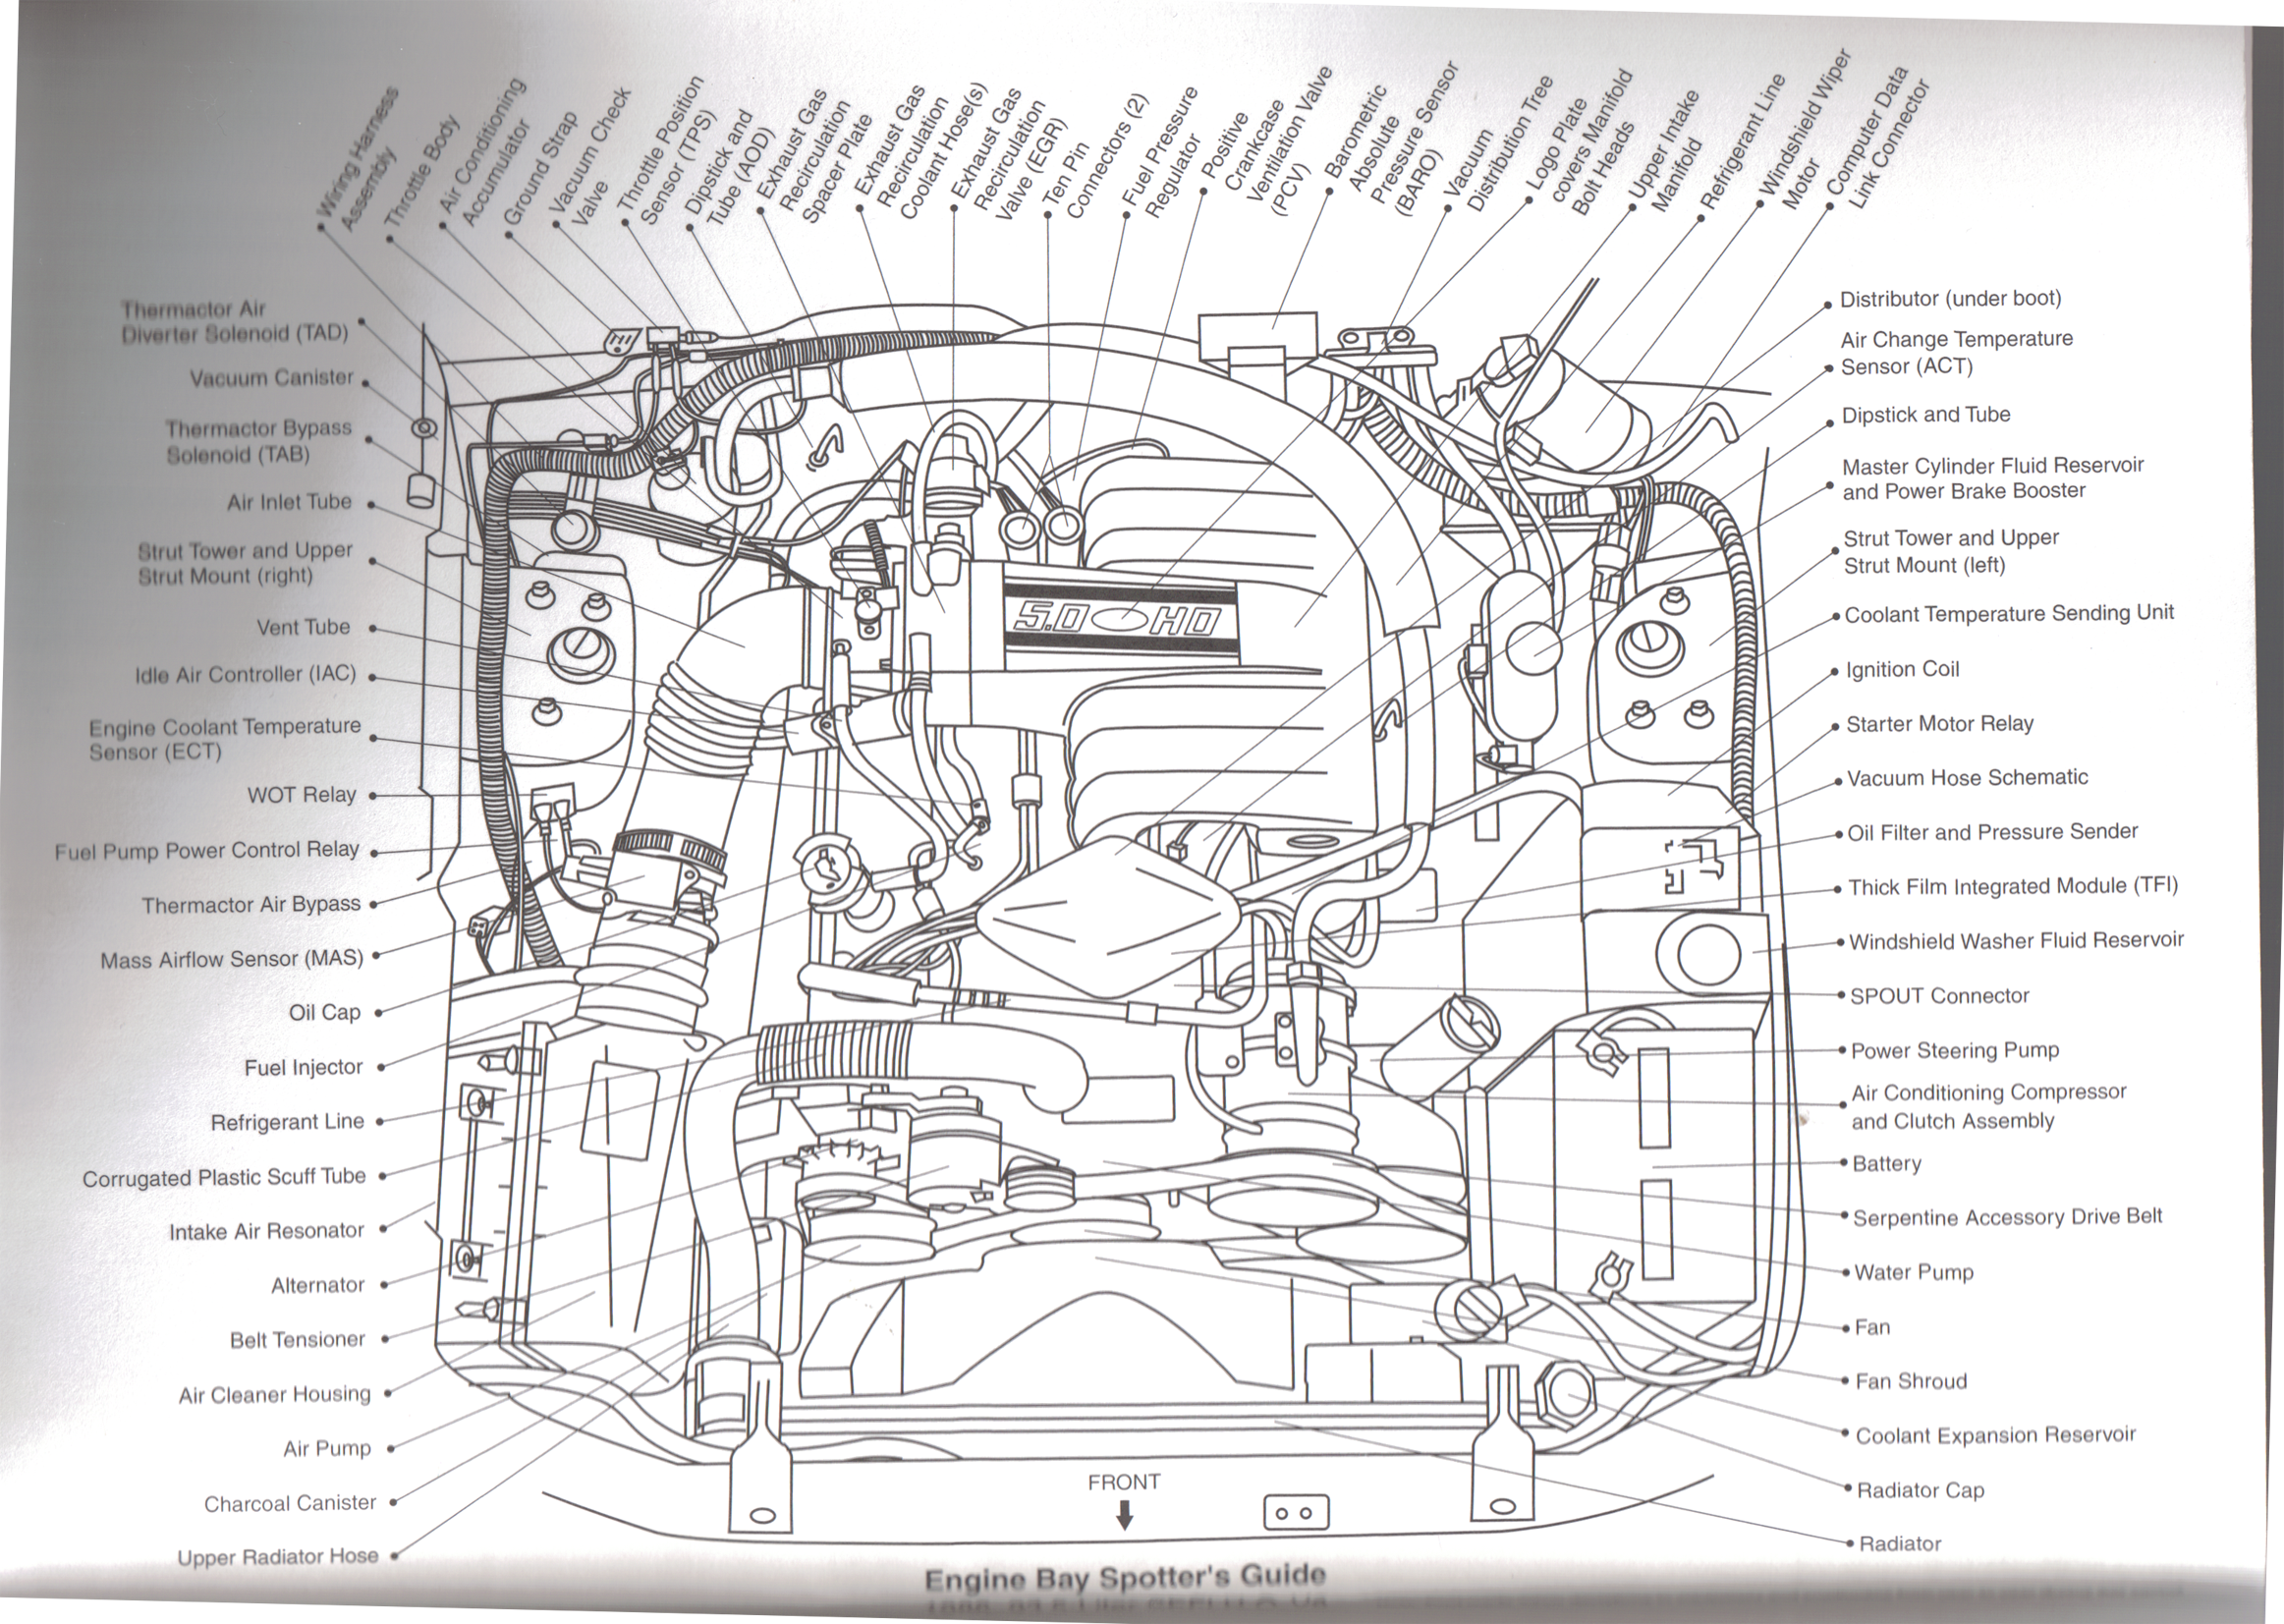 1987 1993 foxbody 5.0 sefi v8 engine part diagram everything you need to know about 1979 1993 foxbody mustangs 93 ford mustang wiring diagram at bayanpartner.co